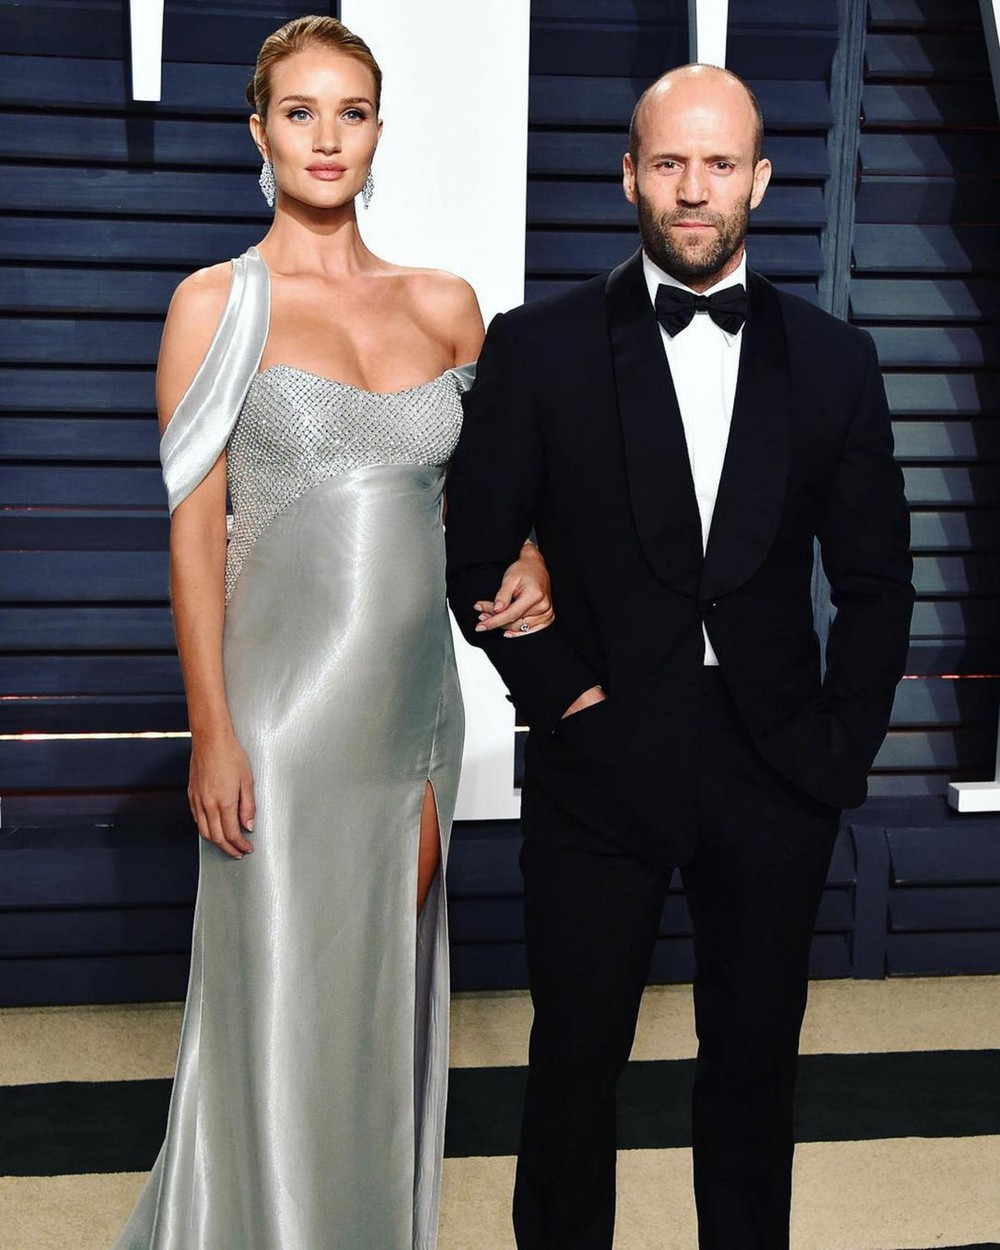 Rosie Huntington-Whiteley: Last night with my loves attending the Vanity Fair Oscar Party,, Image: 322730717, License: Rights-managed, Restrictions: , Model Release: no, Credit line: Profimedia, Face To Face A